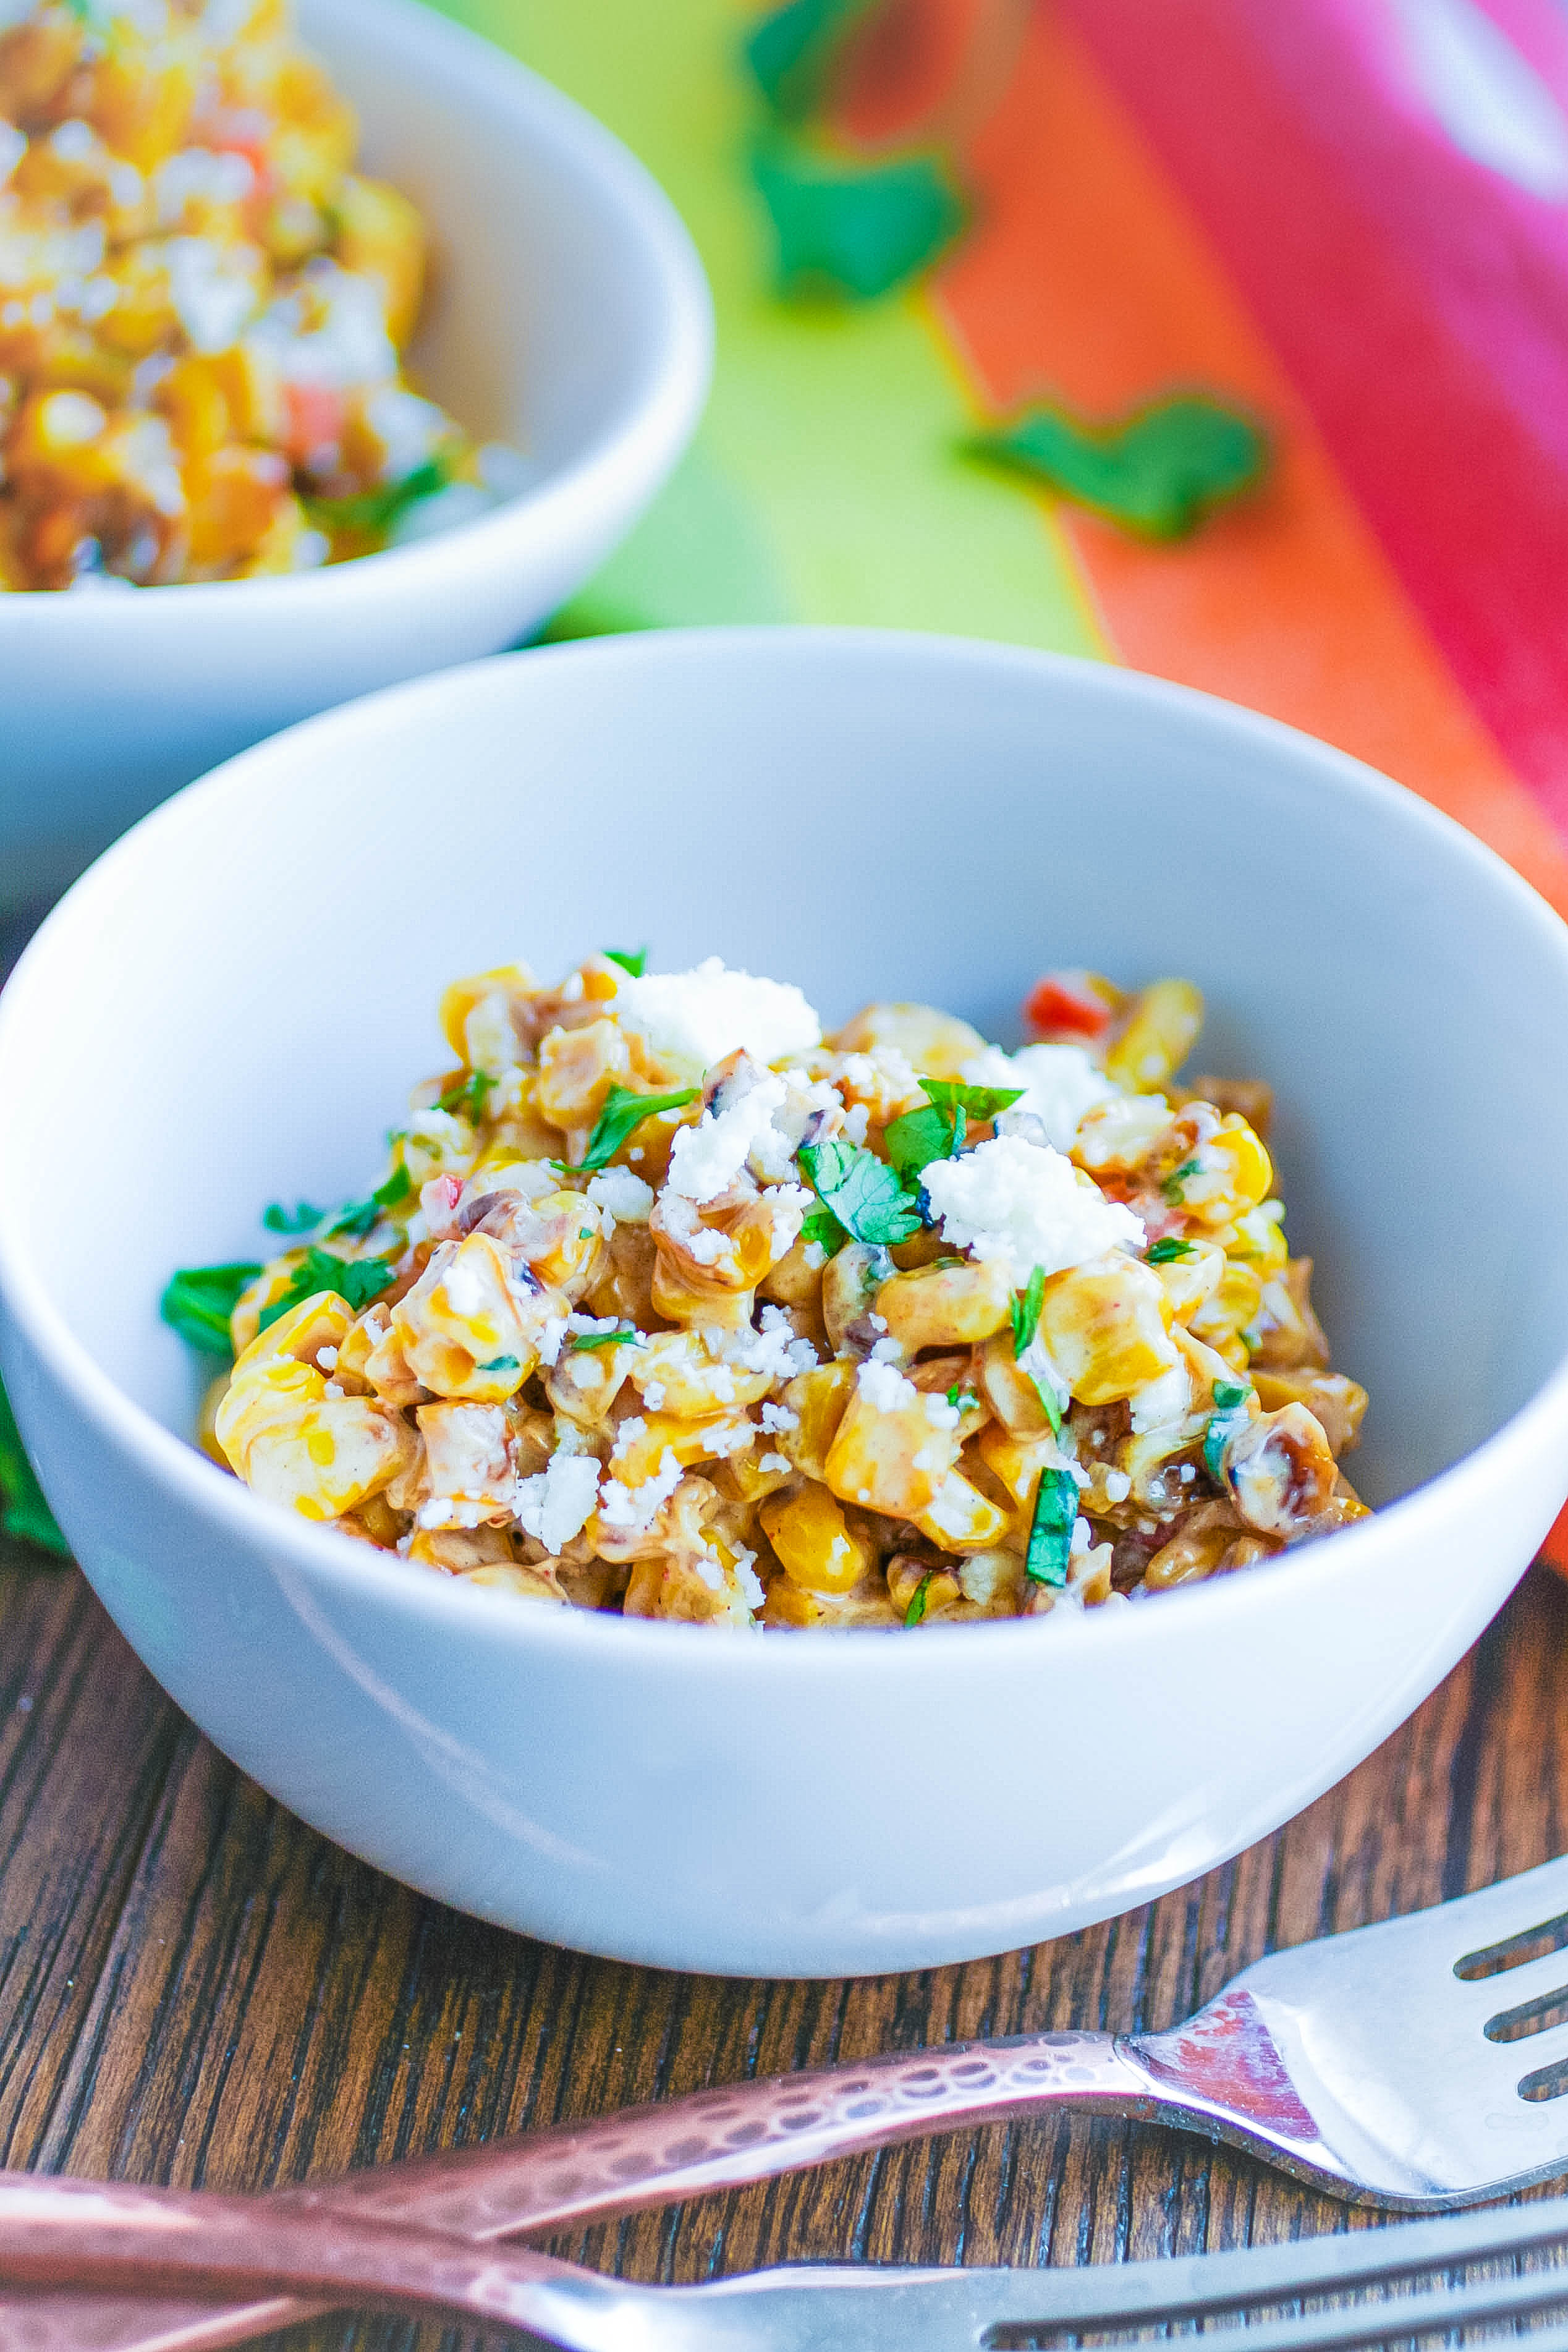 Mexican Street Corn Salad is the ideal side dish for the season. Everyone will enjoy Mexican Street Corn Salad this summer!